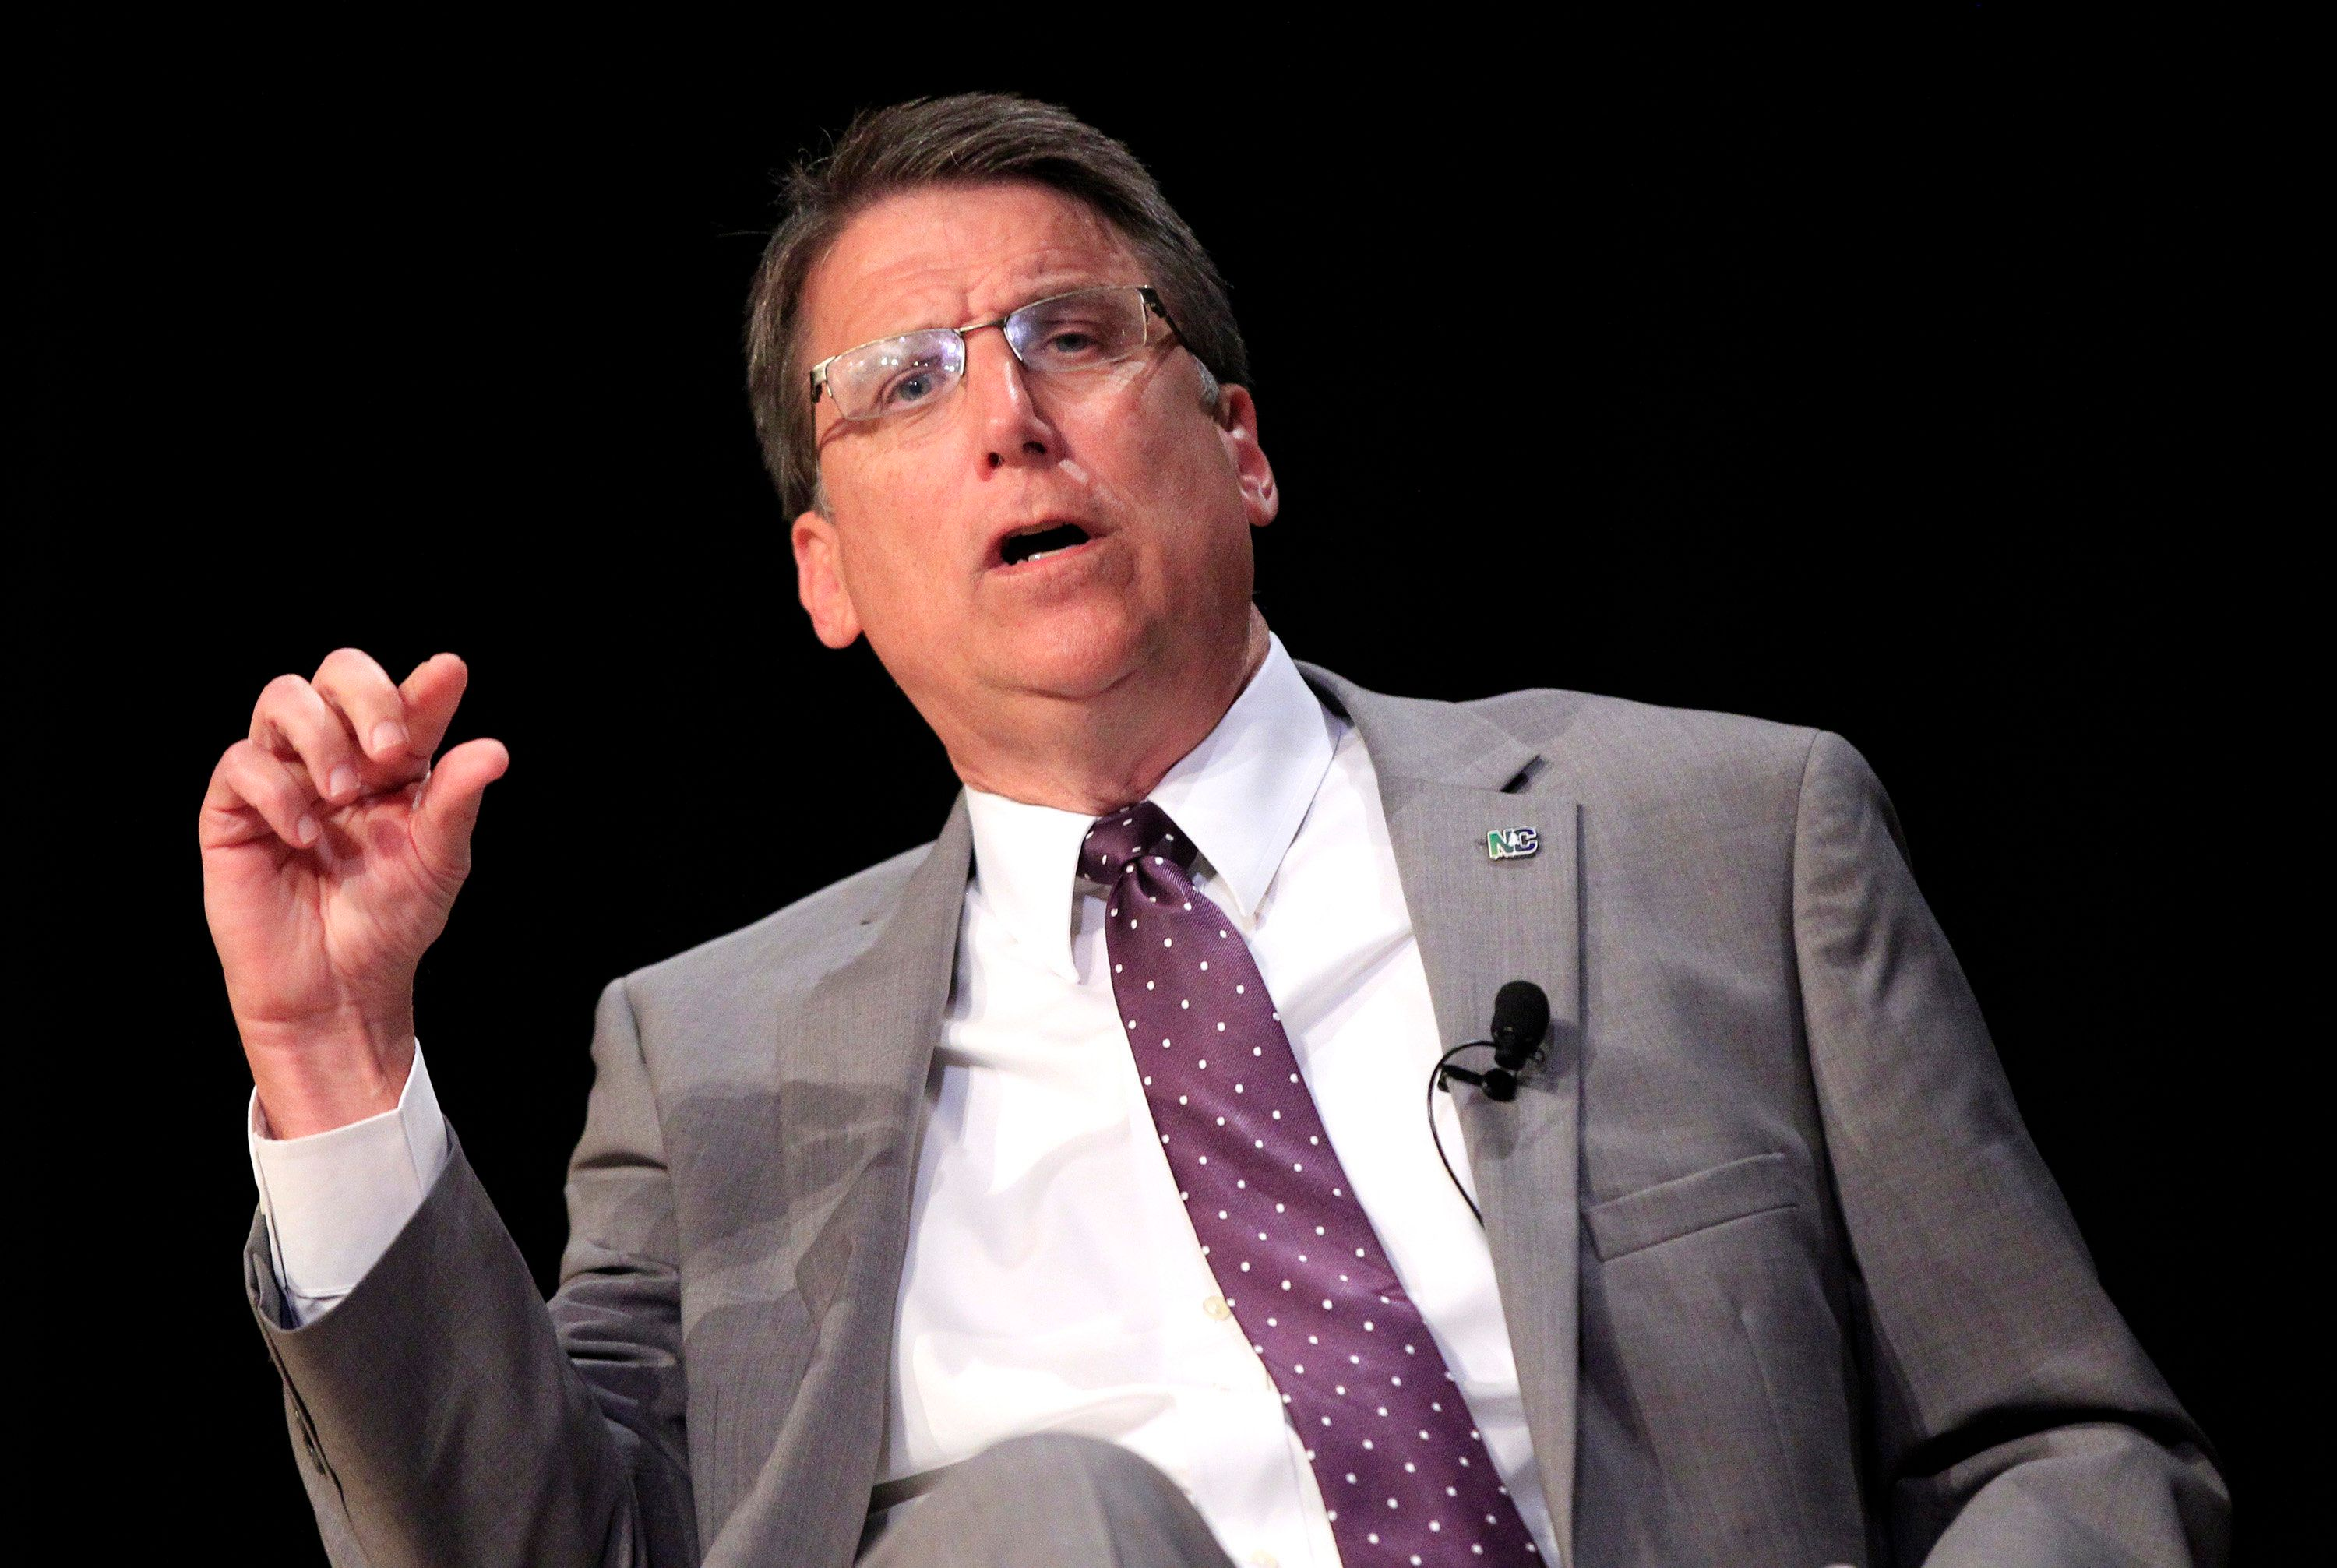 North Carolina Gov. Pat McCrory talks about HB2 during a question and answer session at the N.C. Chamber Annual Government Affairs Conference at the N.C. Museum of History in Raleigh, N.C., on Wednesday, May 4, 2016. (Ethan Hyman/Raleigh News & Observer/TNS via Getty Images)